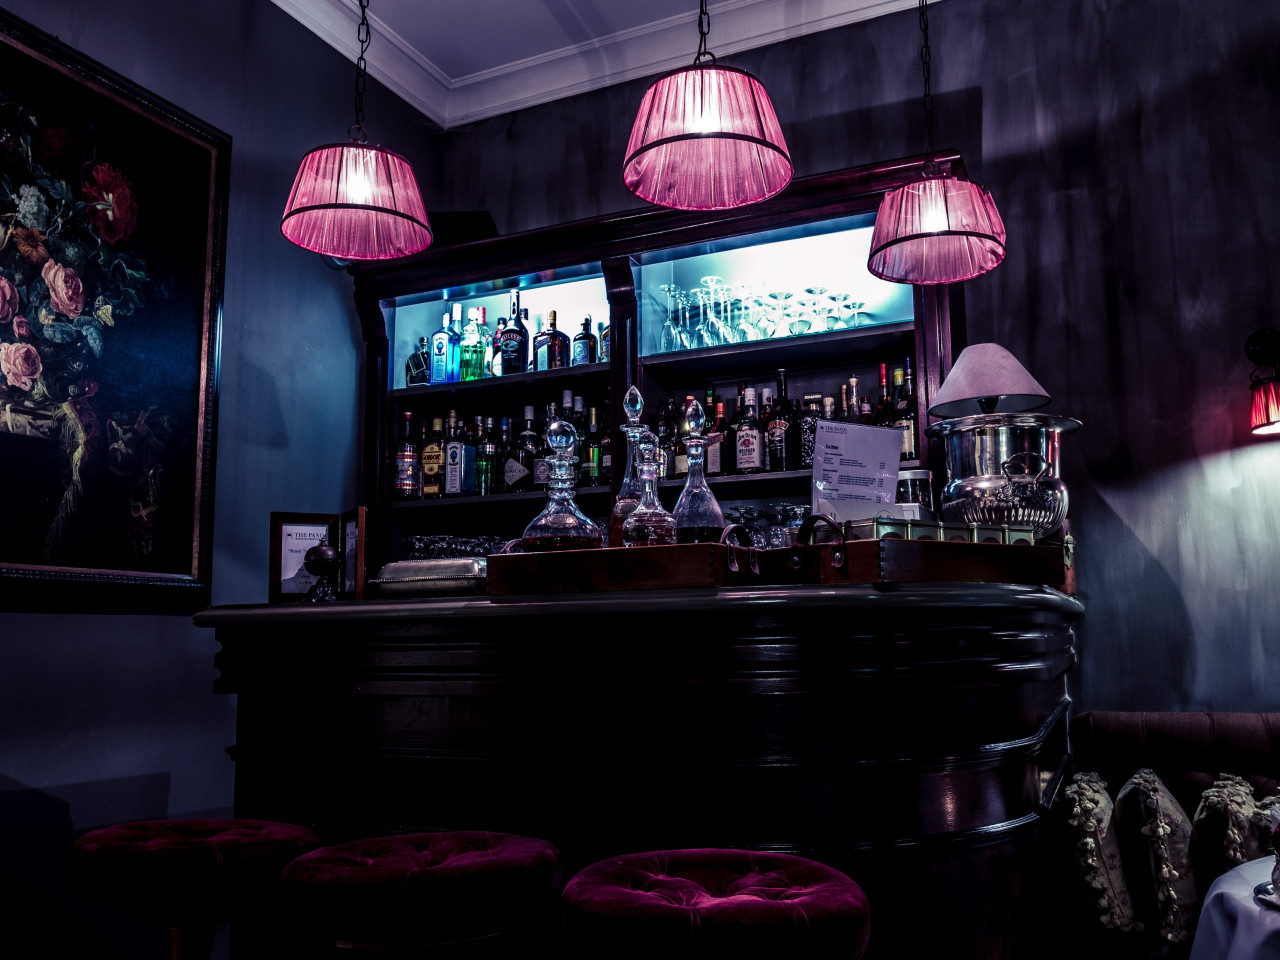 Interior bar design wallpaper 1280x960